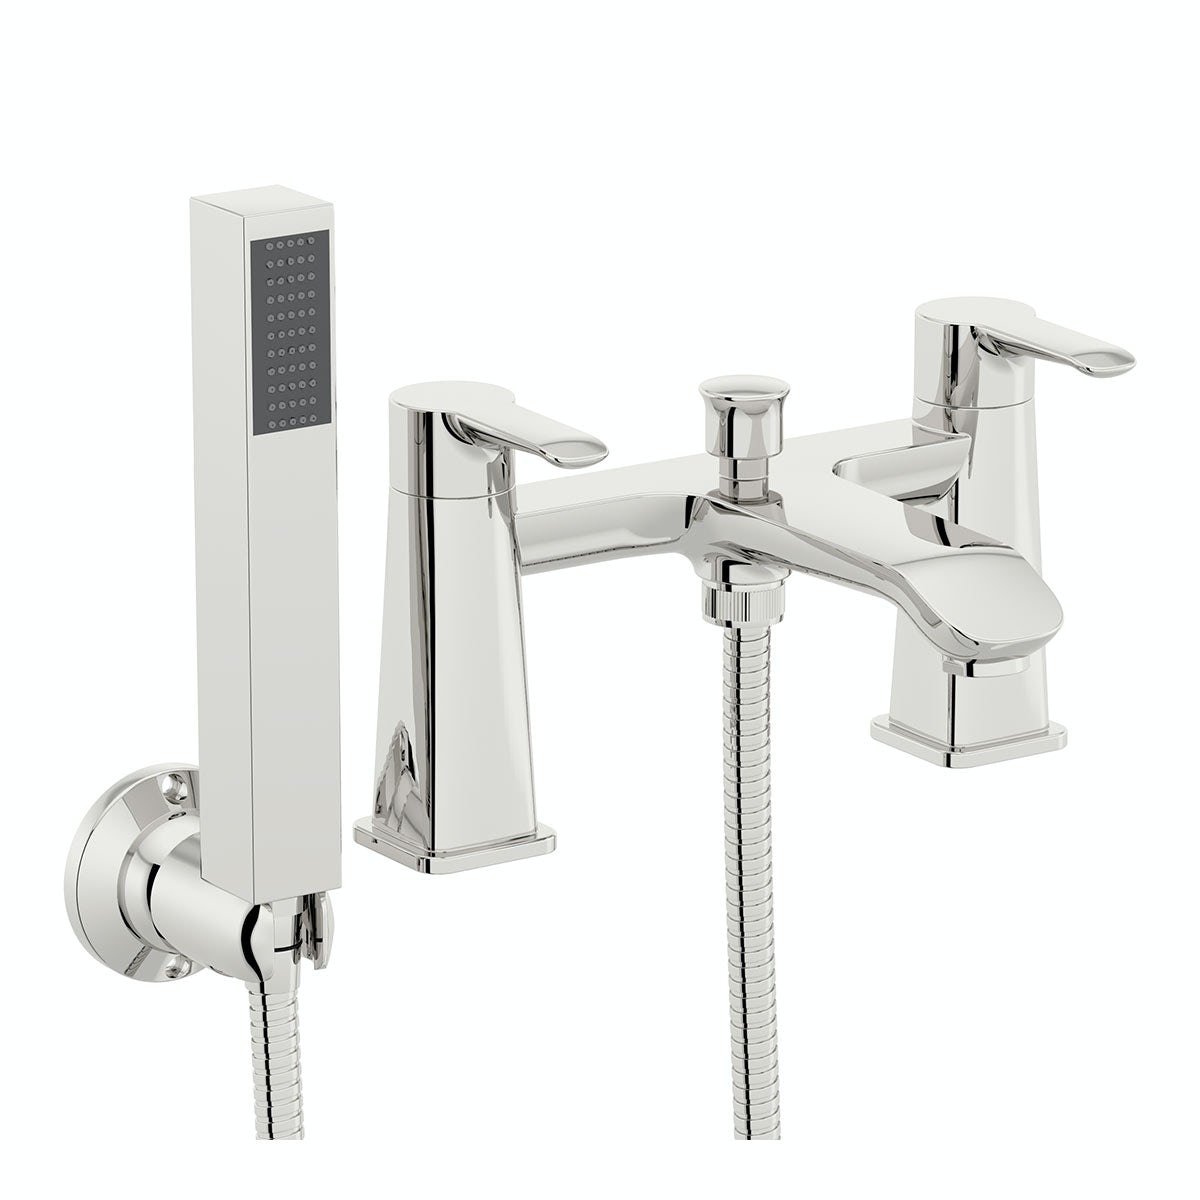 Orchard Wave bath shower mixer tap offer pack